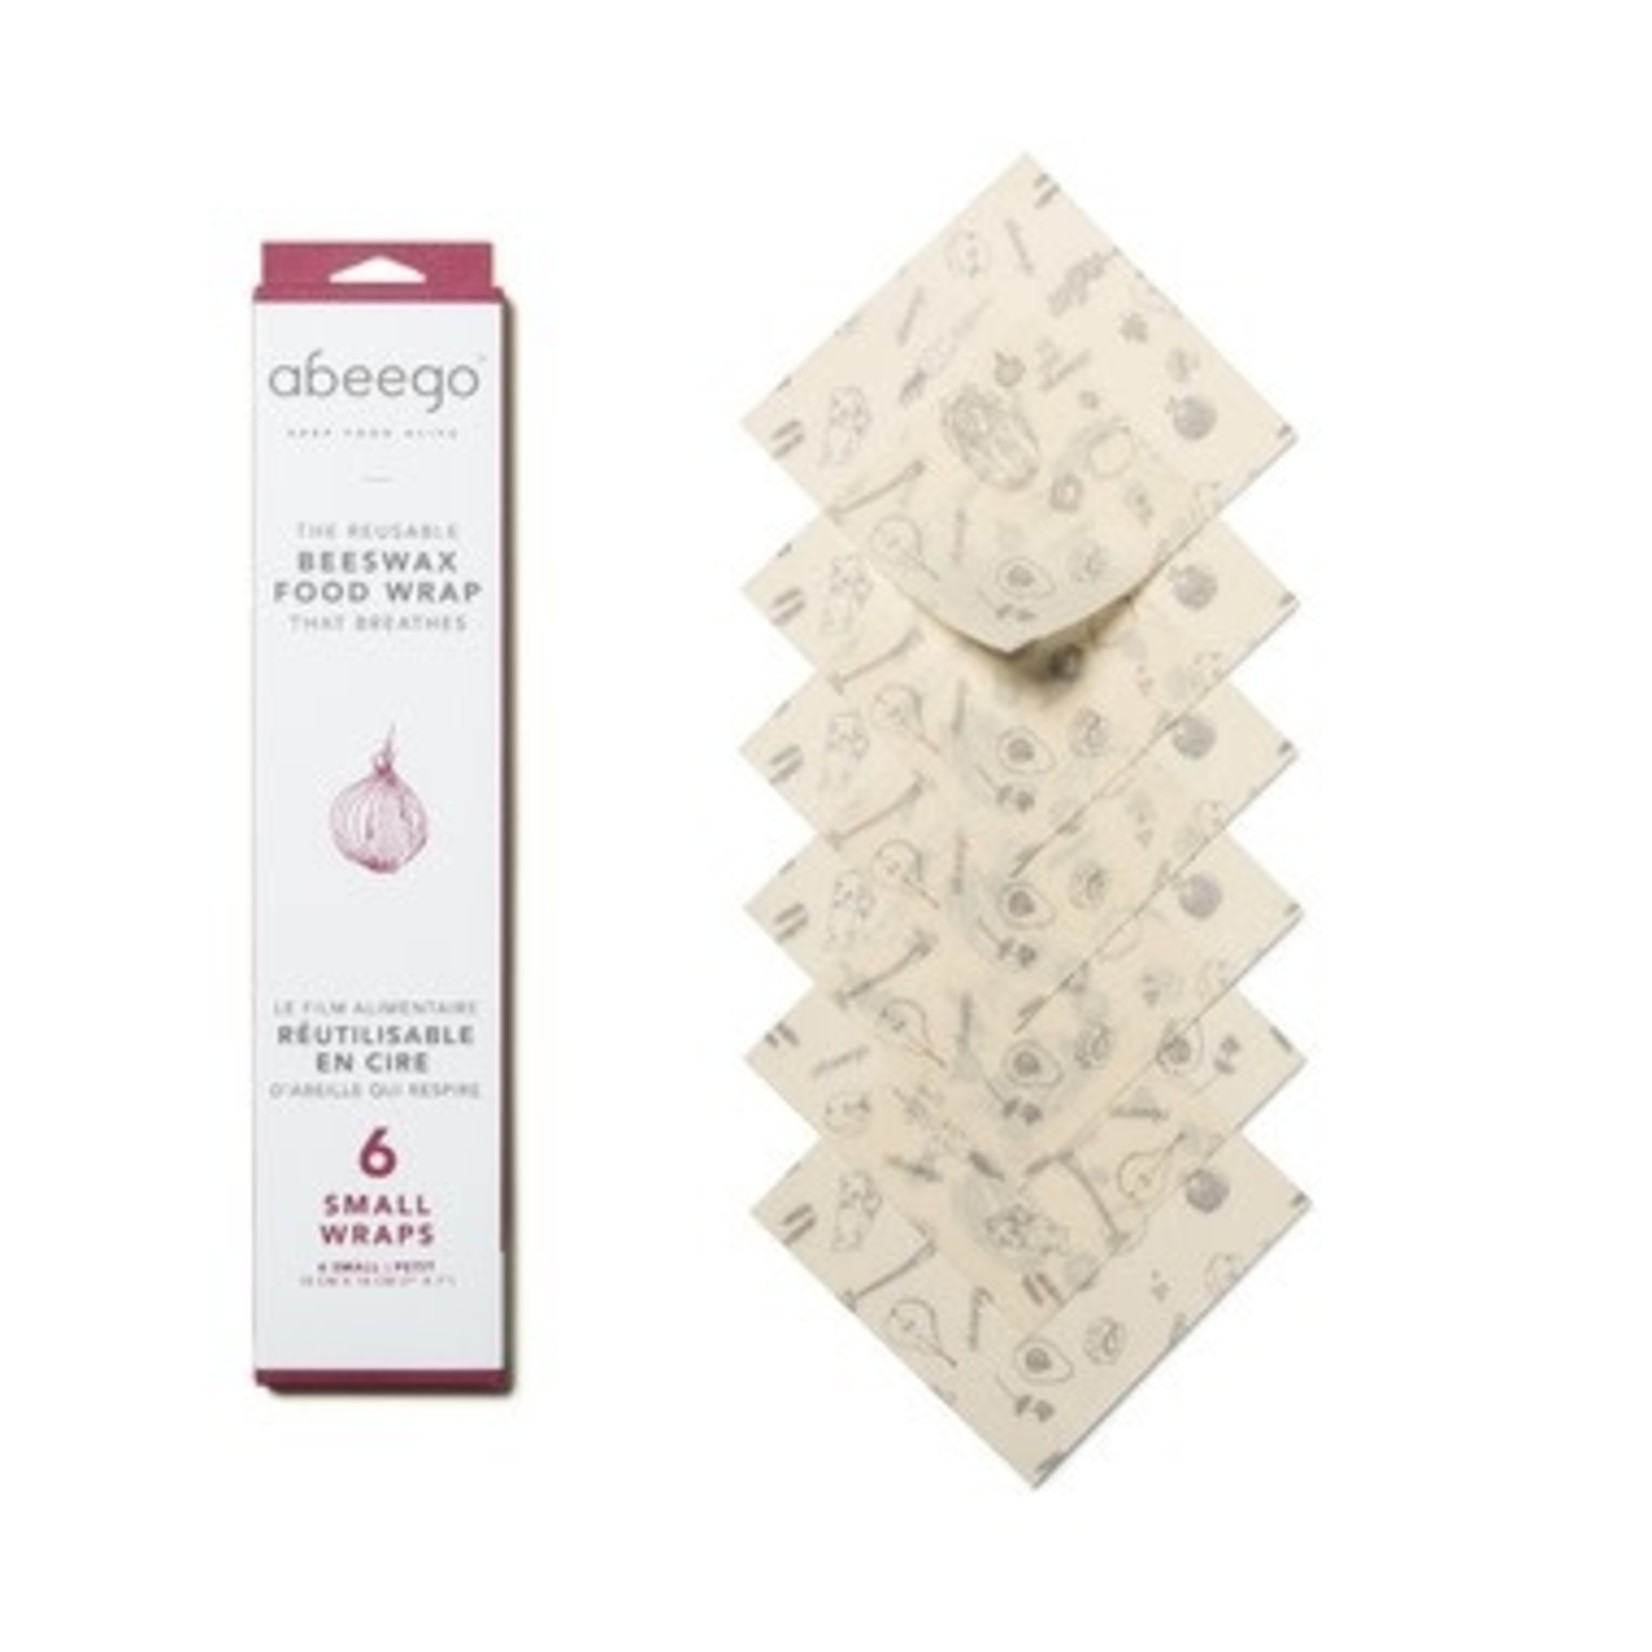 ABEEGO Small Reusable Beeswax Food Wraps